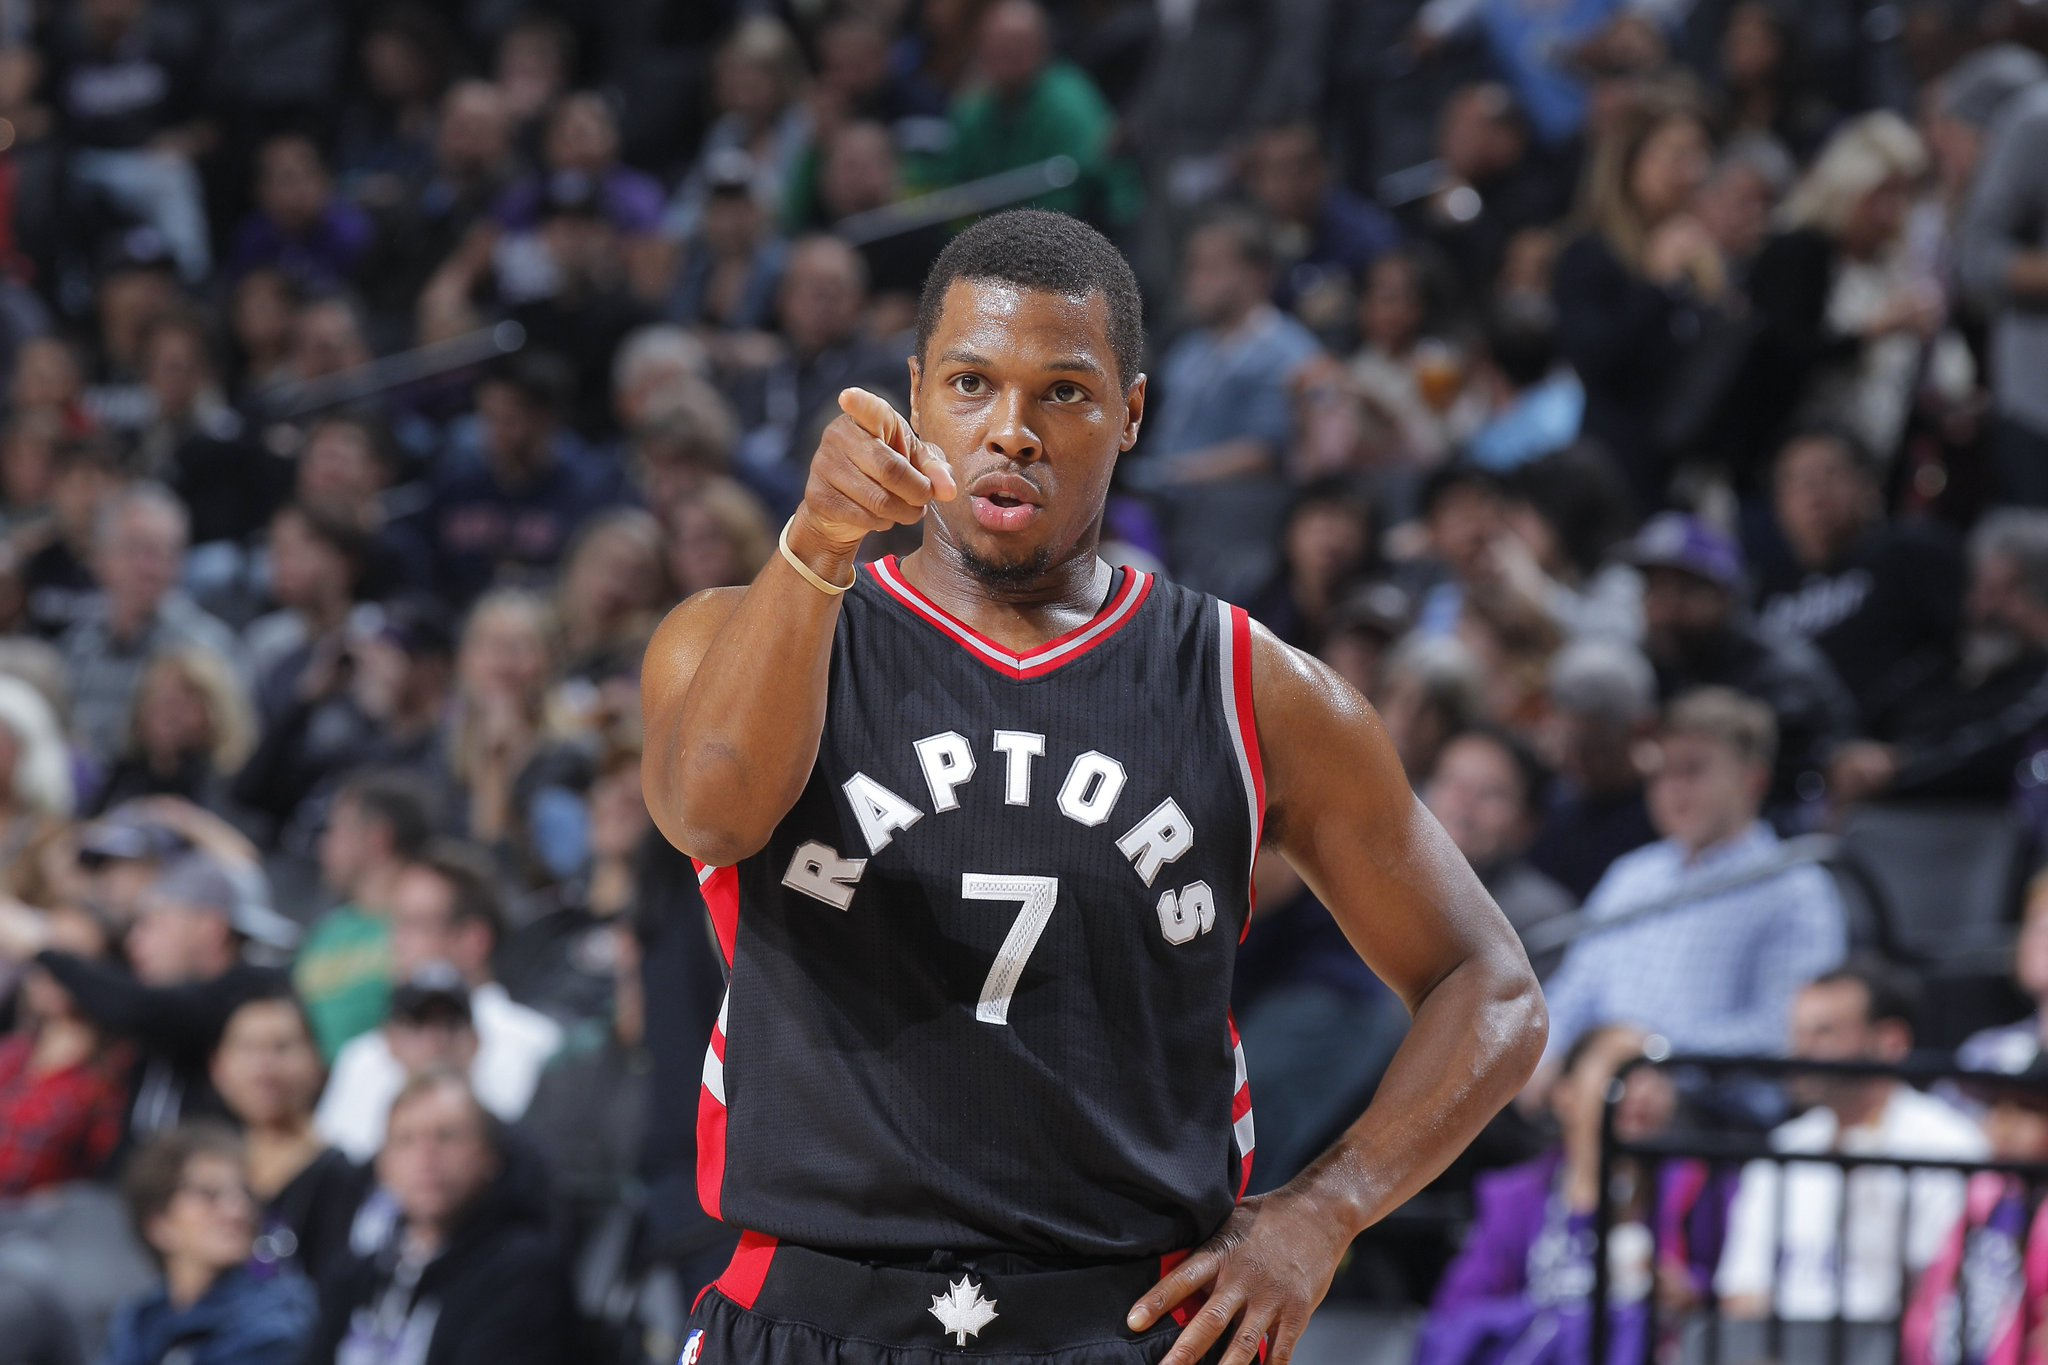 Hey YOU... yes you... hit Retweet.  Kyle Lowry #NBAVote https://t.co/BSM1rFLhV7